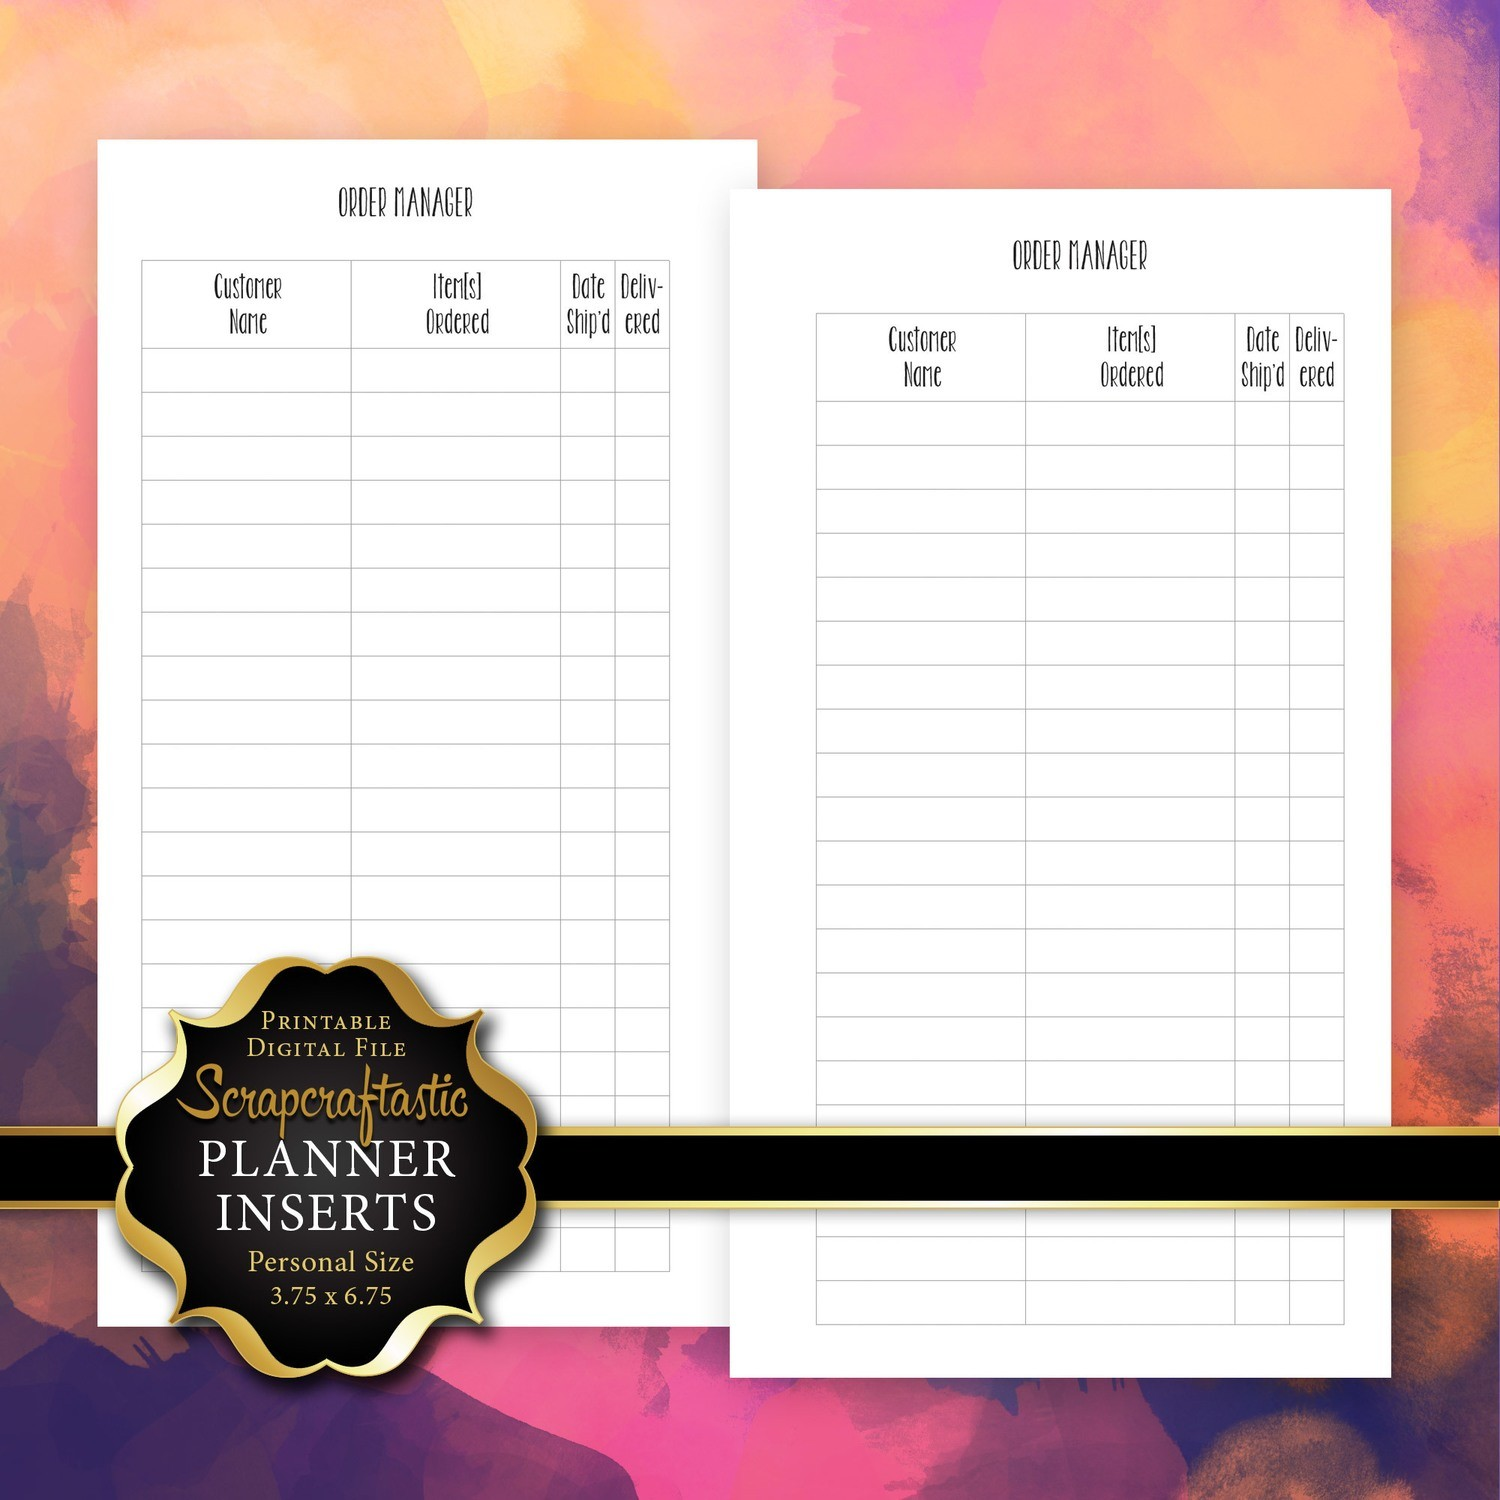 Order Manager Personal Size Printable Planner Inserts